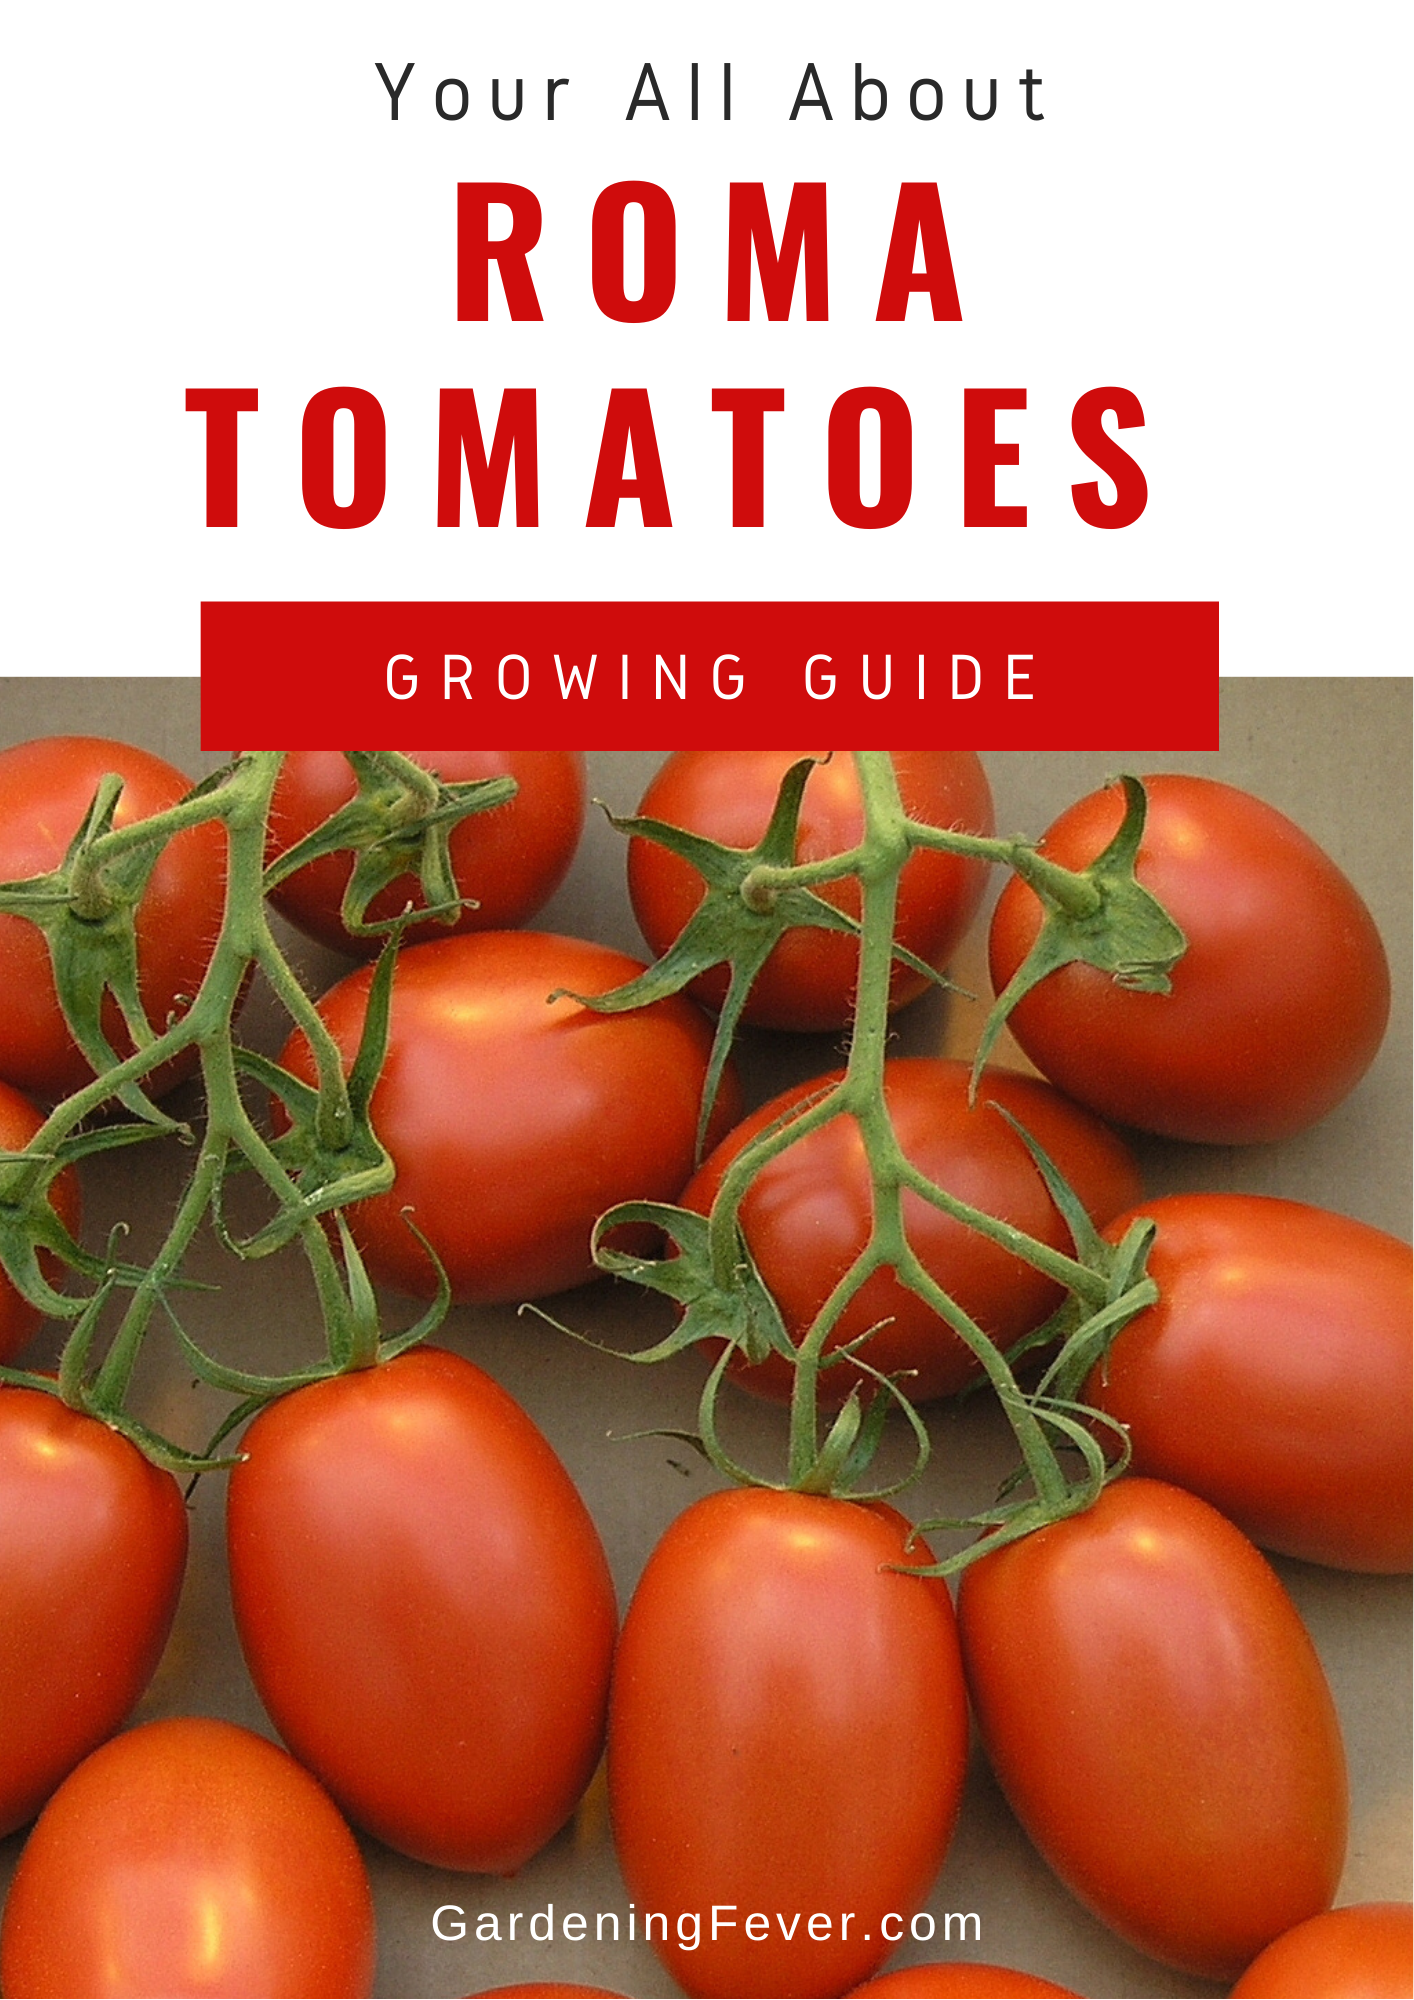 Your All About Roma Tomatoes Guide In 2020 Winter Vegetables Gardening Tomato Growing Organic Vegetables